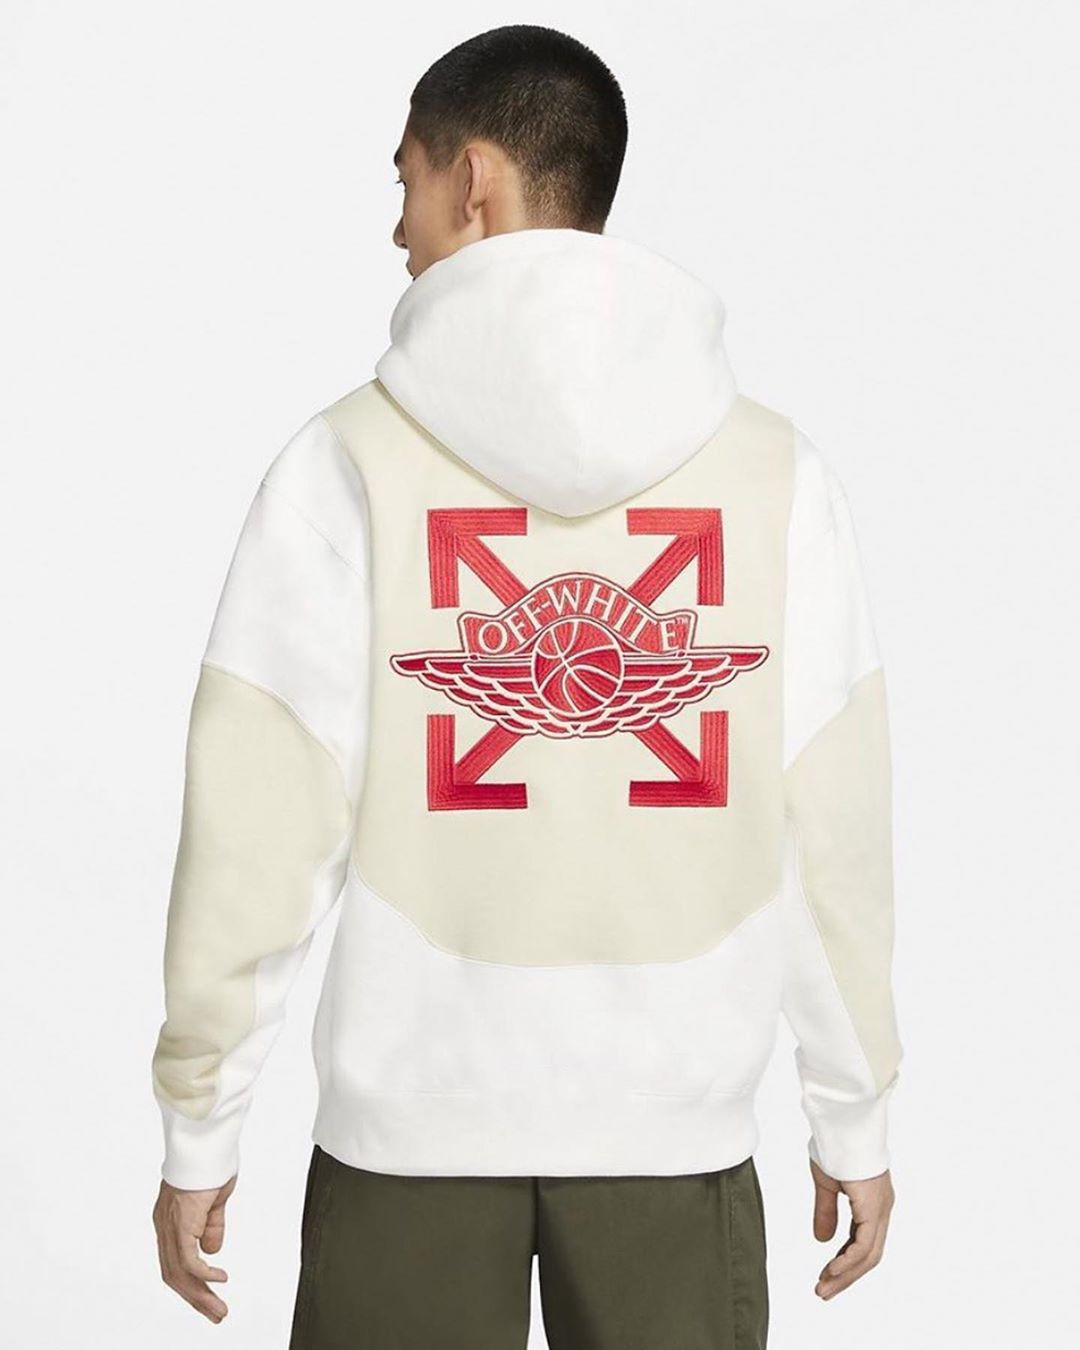 Off-White x Jordan Brand Air Jordan 5 Sail hoodie